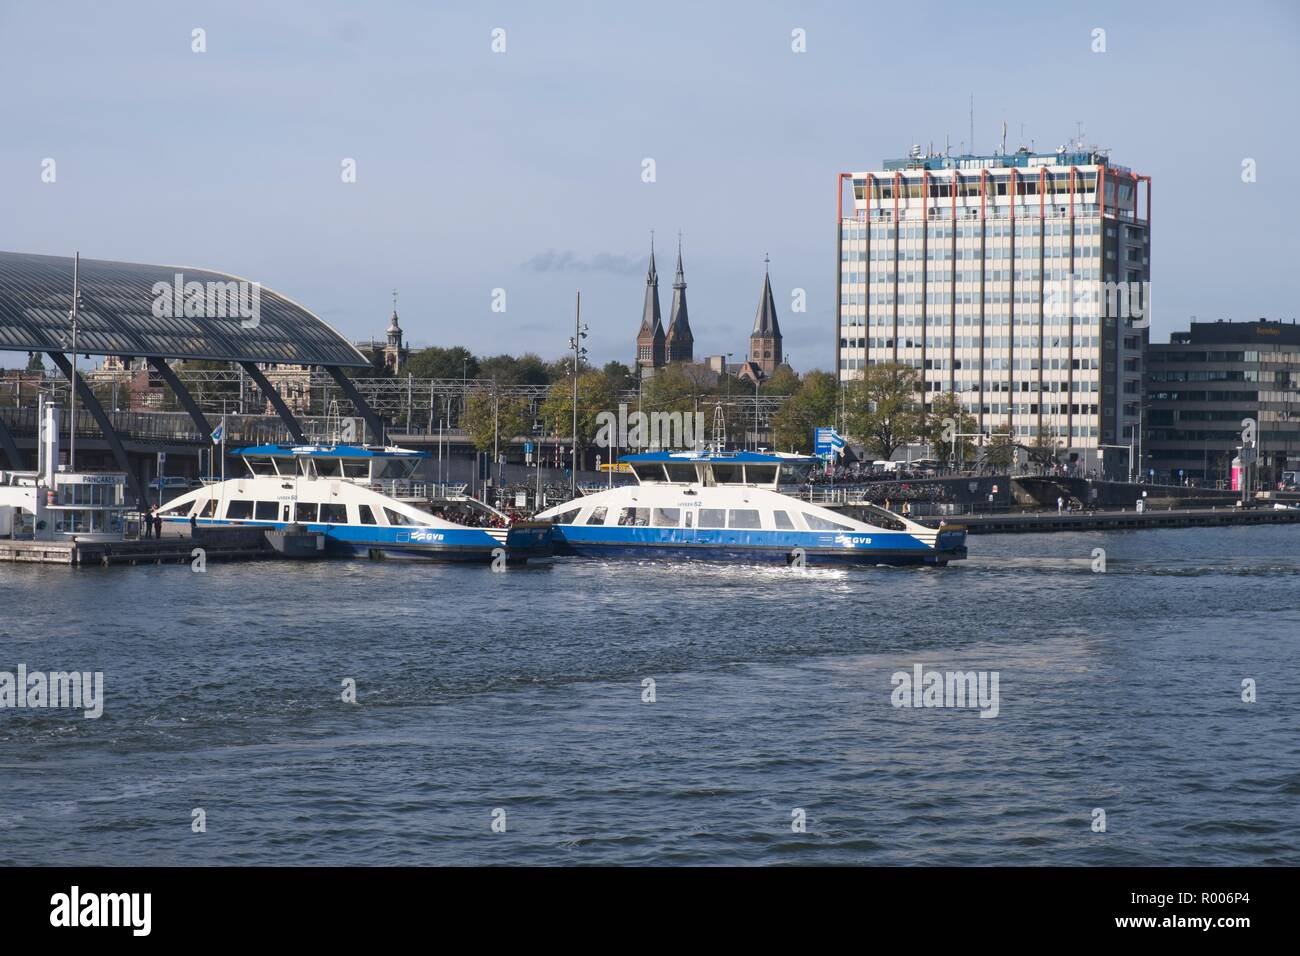 PASSENGER FERRIES MOORED ON THE SOUTH BANK OF THE IJ IN PREPARATION FOR CARRYING PASSENGERS ACROSS TO THE NORTH BANK, AMSTERDAM, THE NETHERLANDS - Stock Image